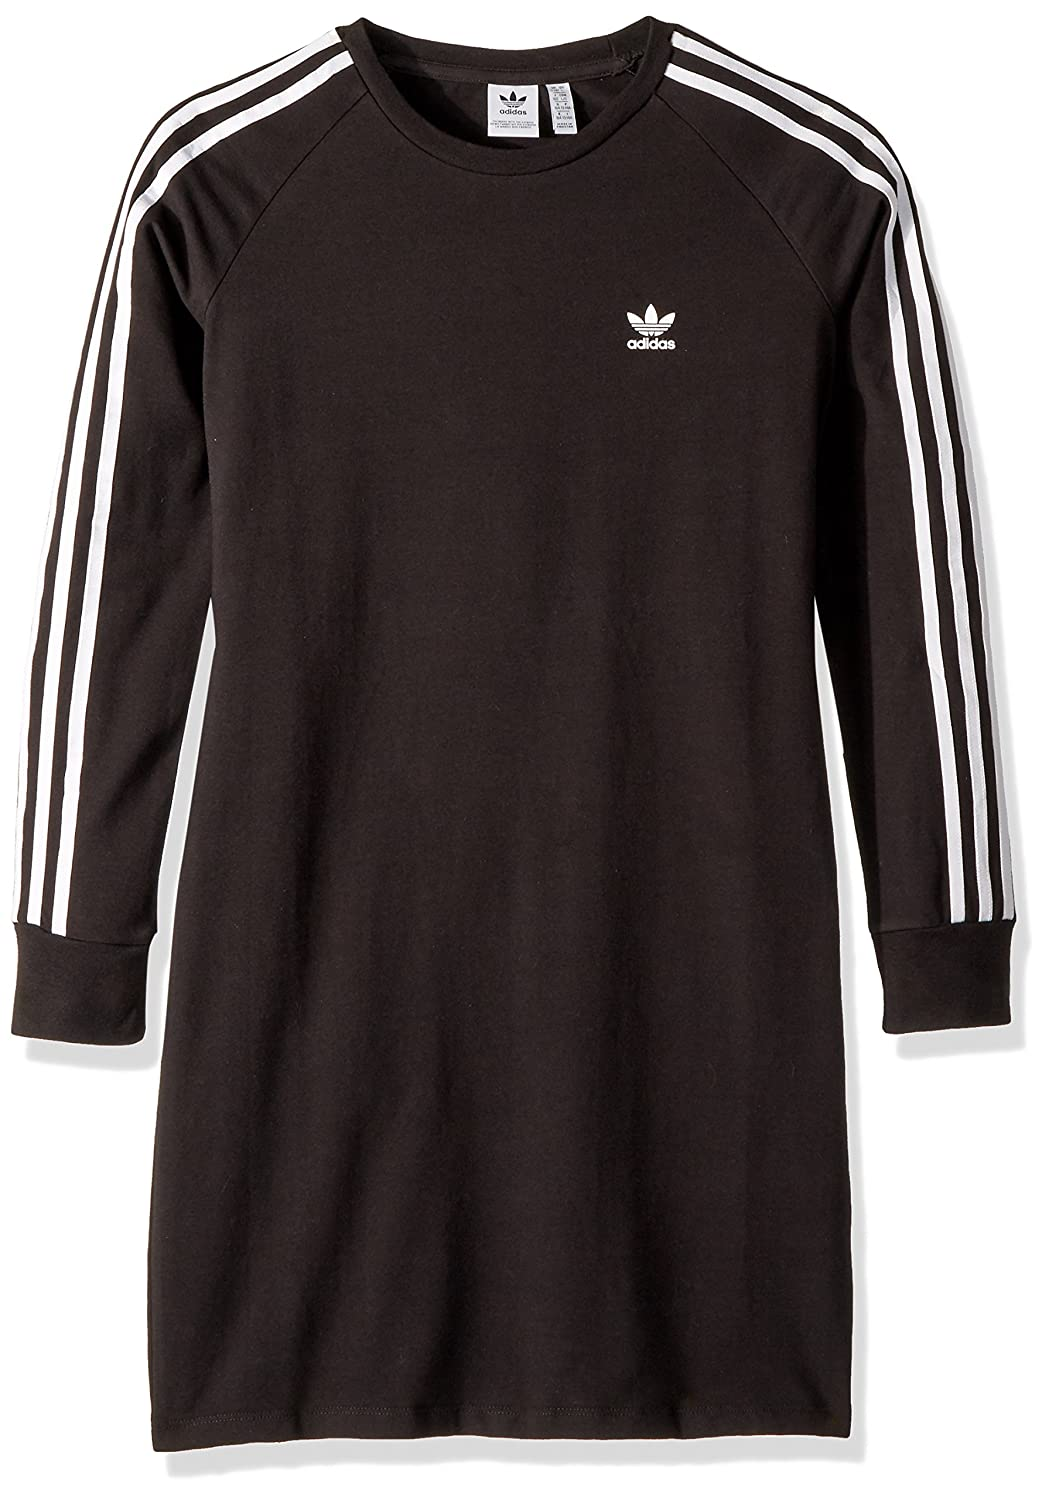 adidas Originals Girls Big Girls Trefoil Dress DH2682